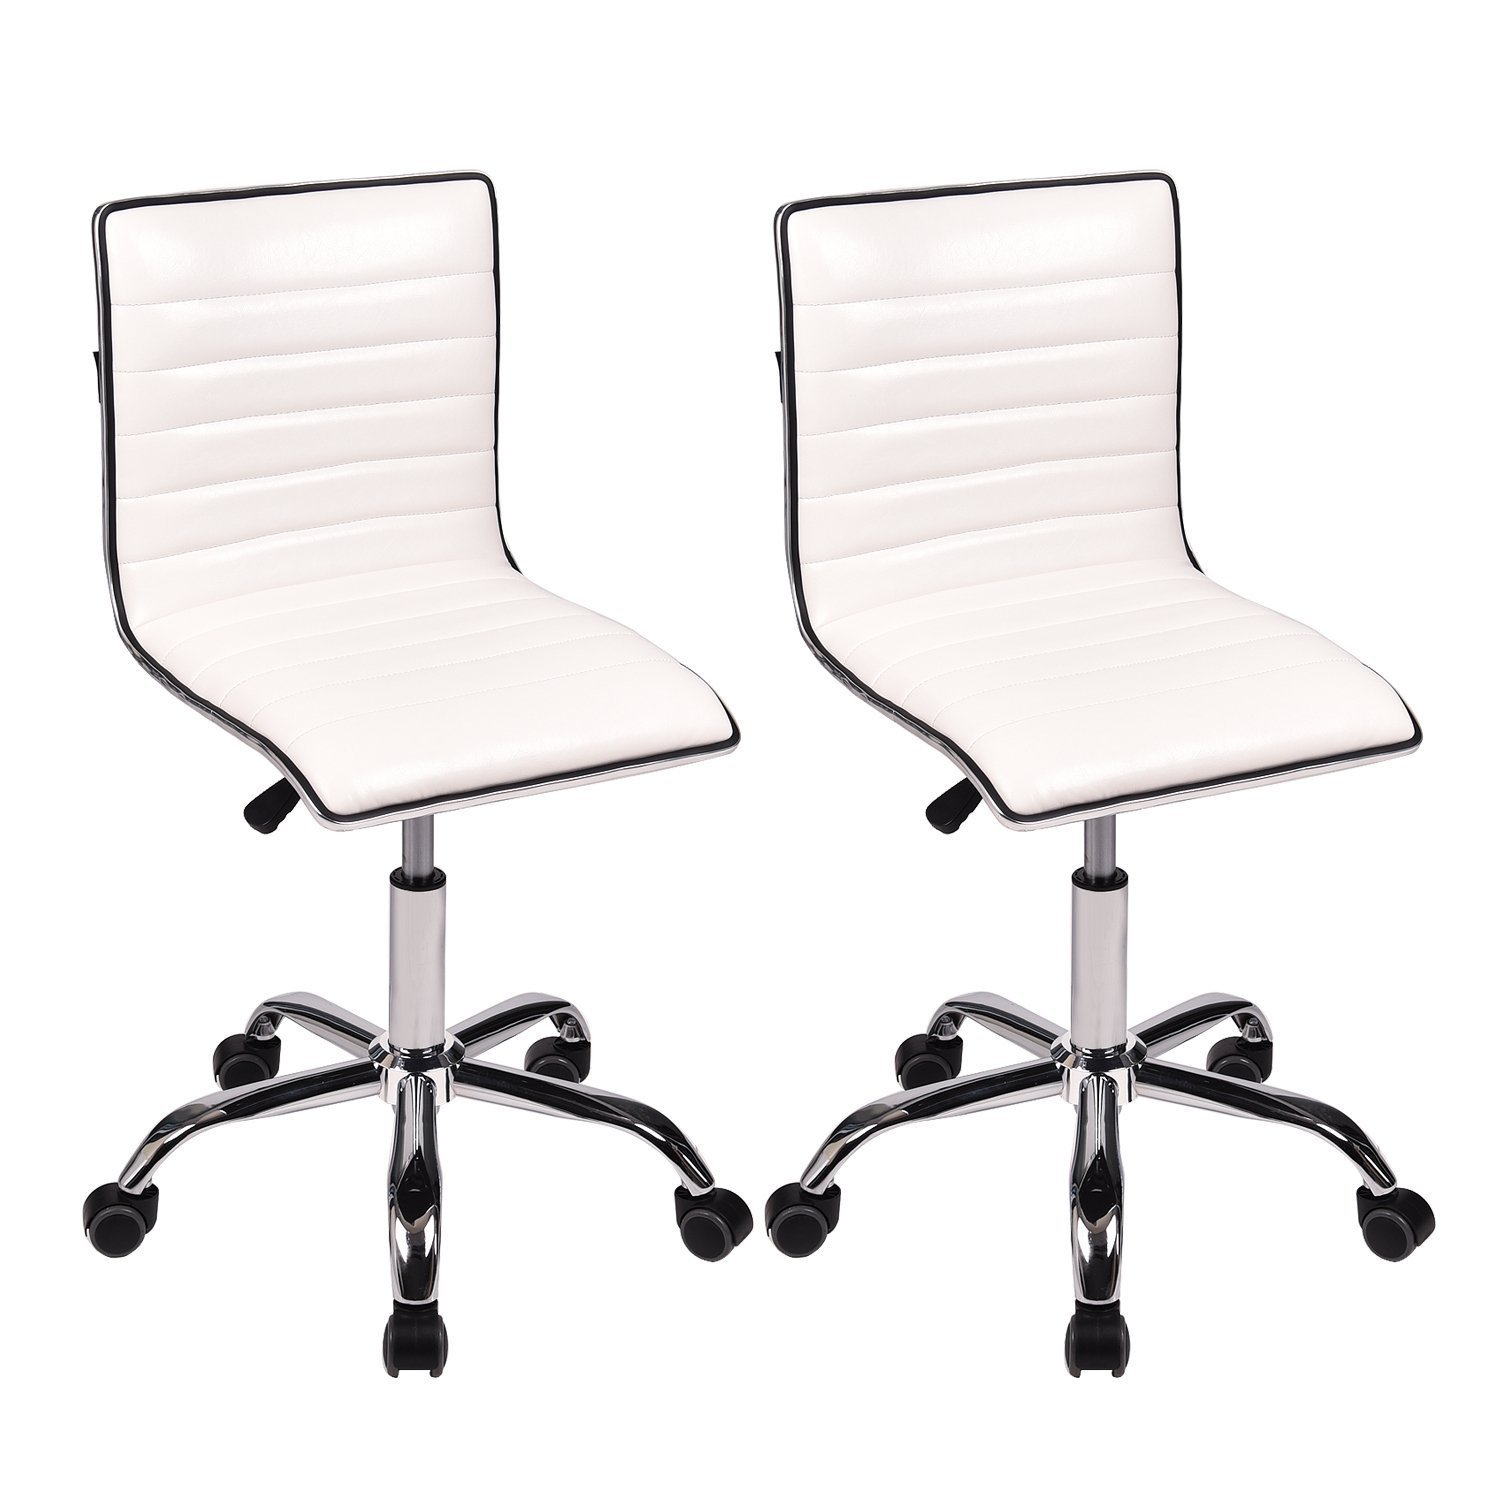 YOURLUITE Set of 2 - Armless Swivel Task Chair - Upholstered Office Chair - Ribbed Design (White)